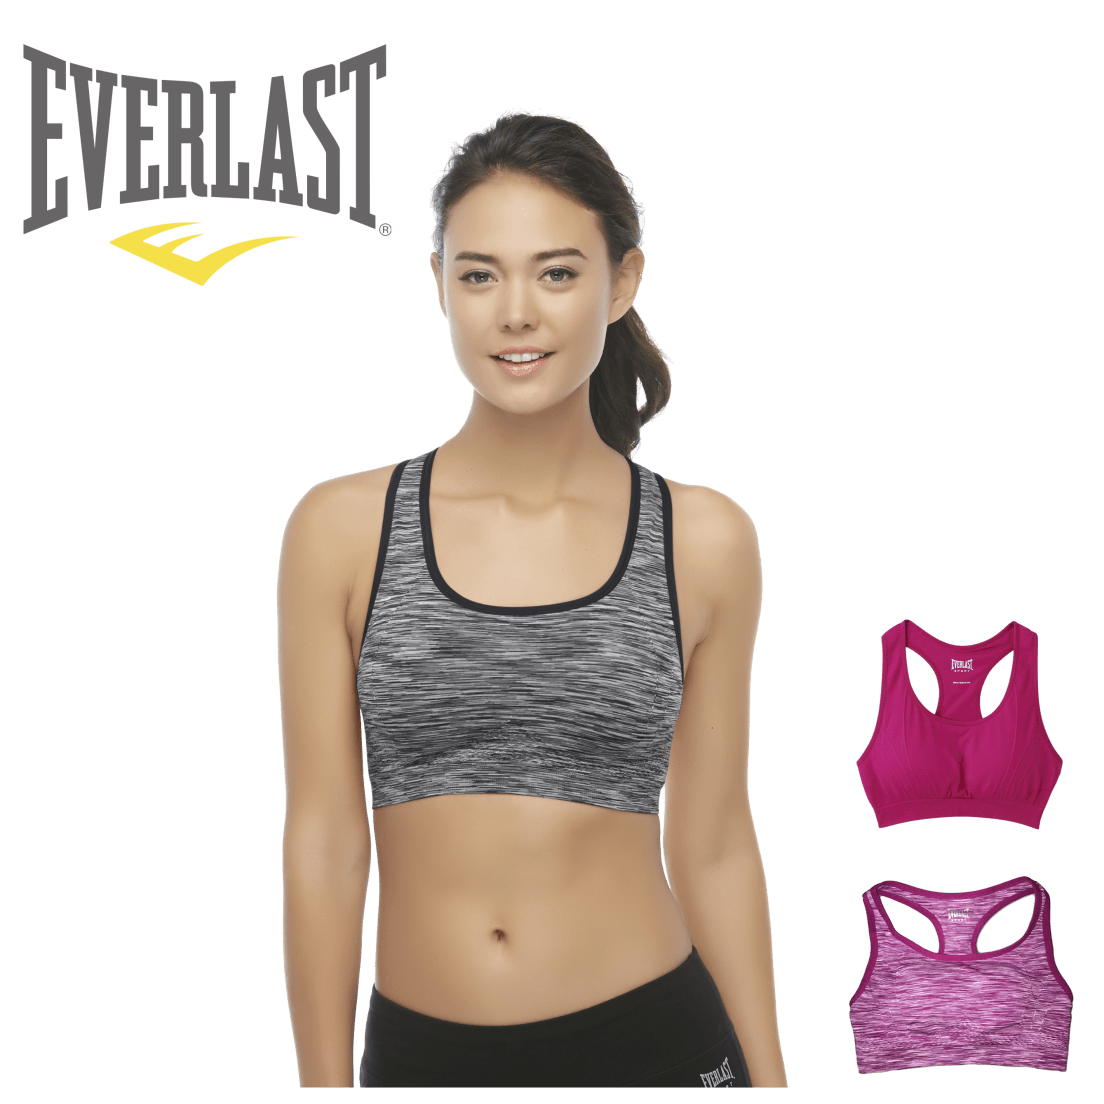 fcace4c598 2-Pack Everlast Padded Racerback Sports Bras